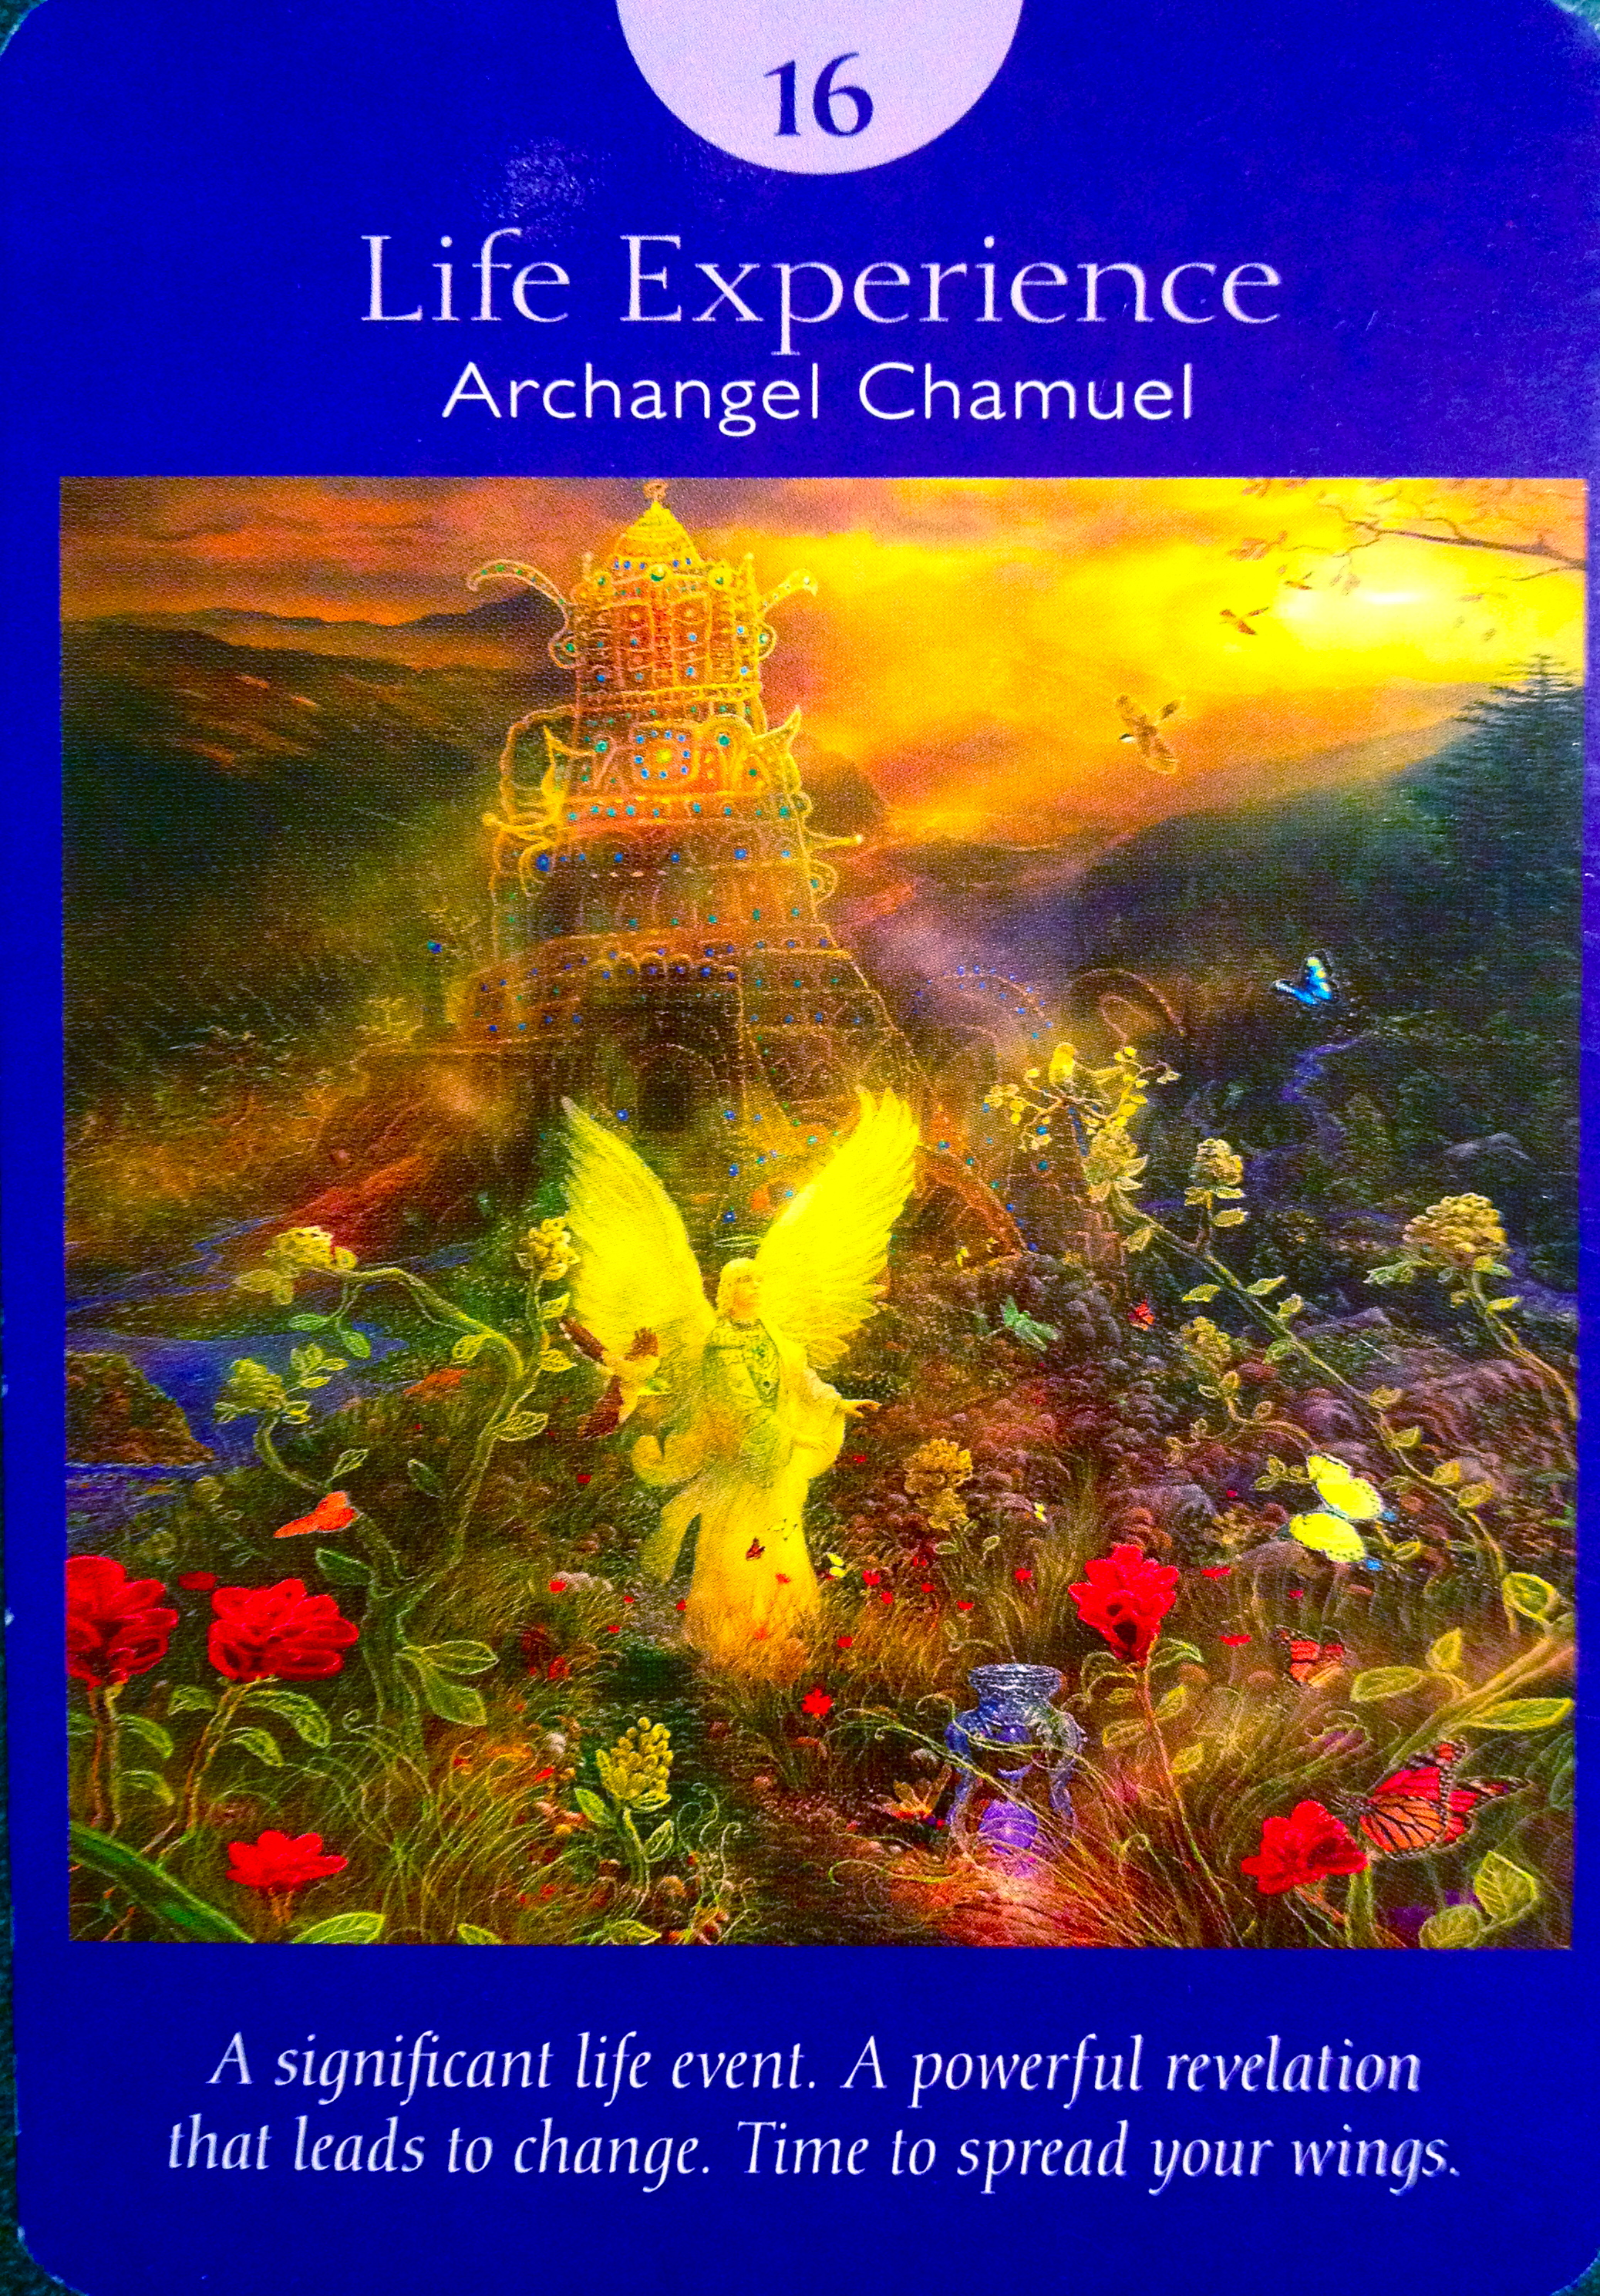 Archangel Chamuel Life Experience Archangel Oracle